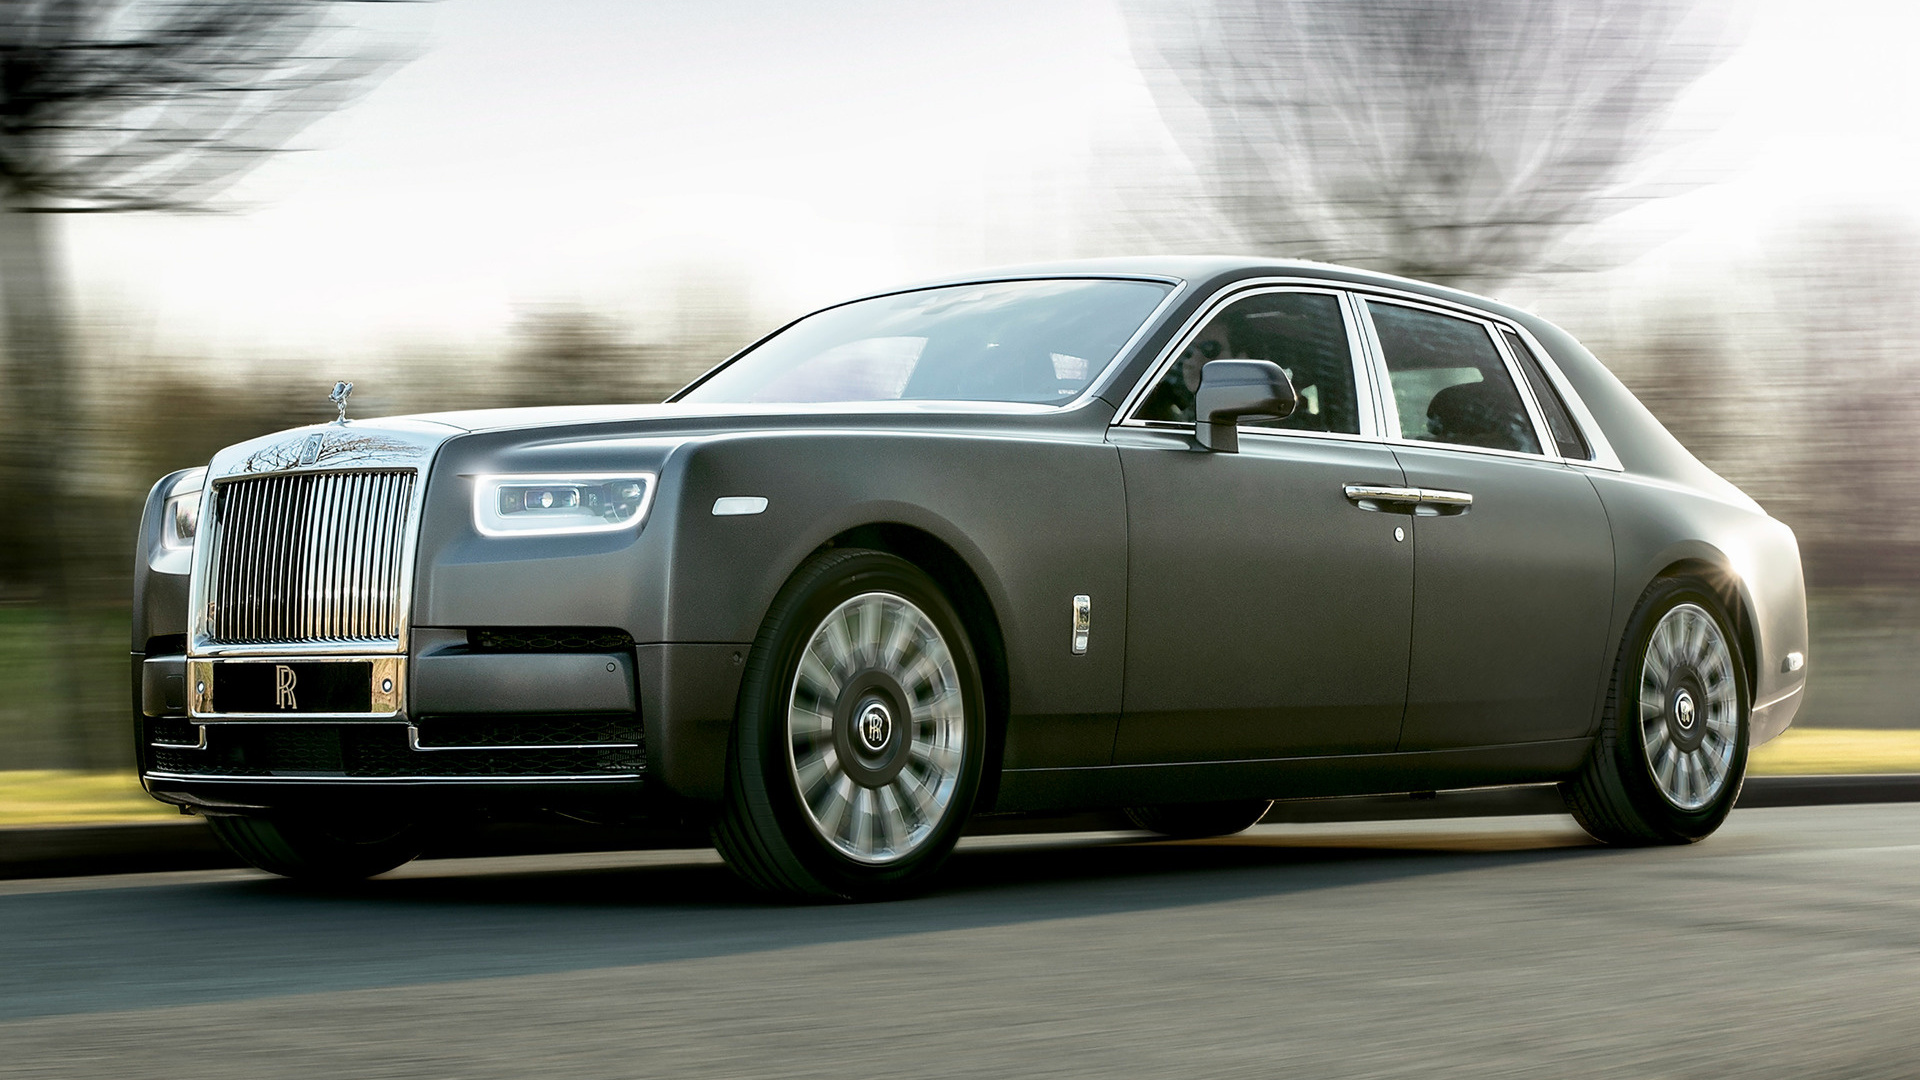 Phantom Car Wallpaper Rolls Royce Phantom The Gentleman S Tourer 2018